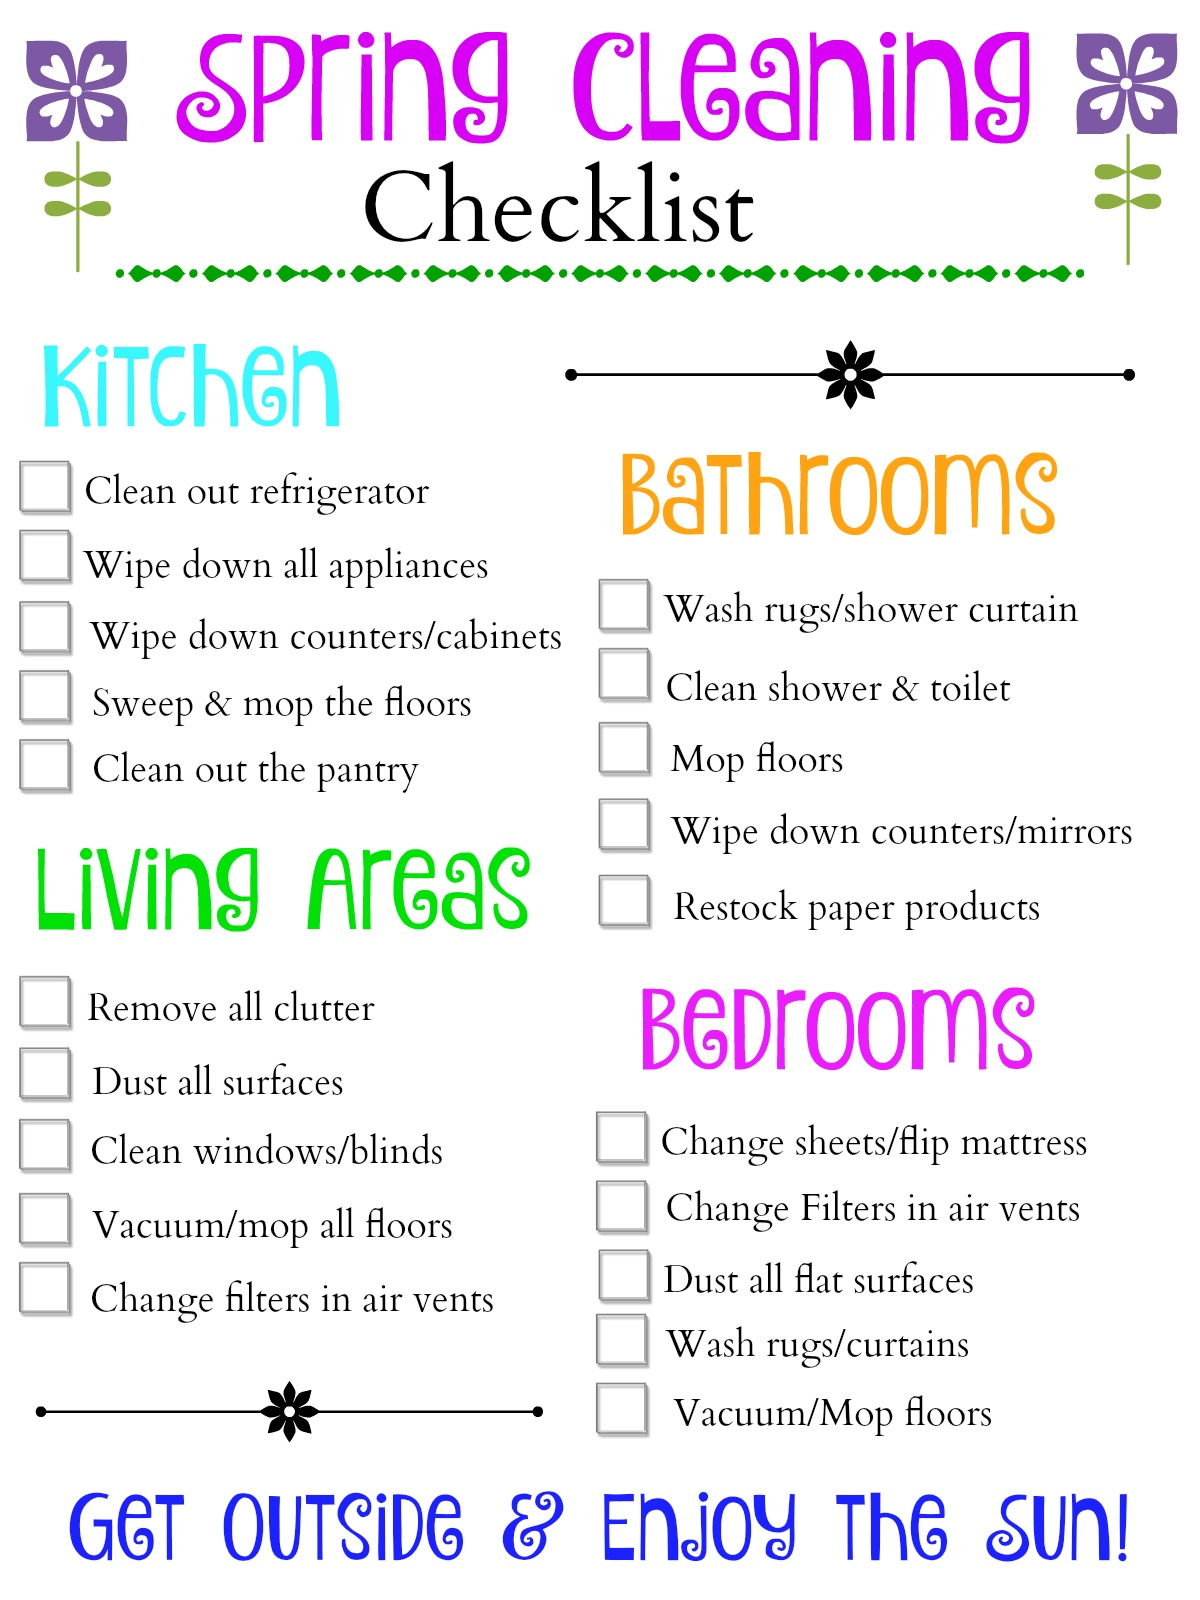 Spring Cleaning List Spring Cleaning Made Simple  The Adventures Of Jman And Millerbug